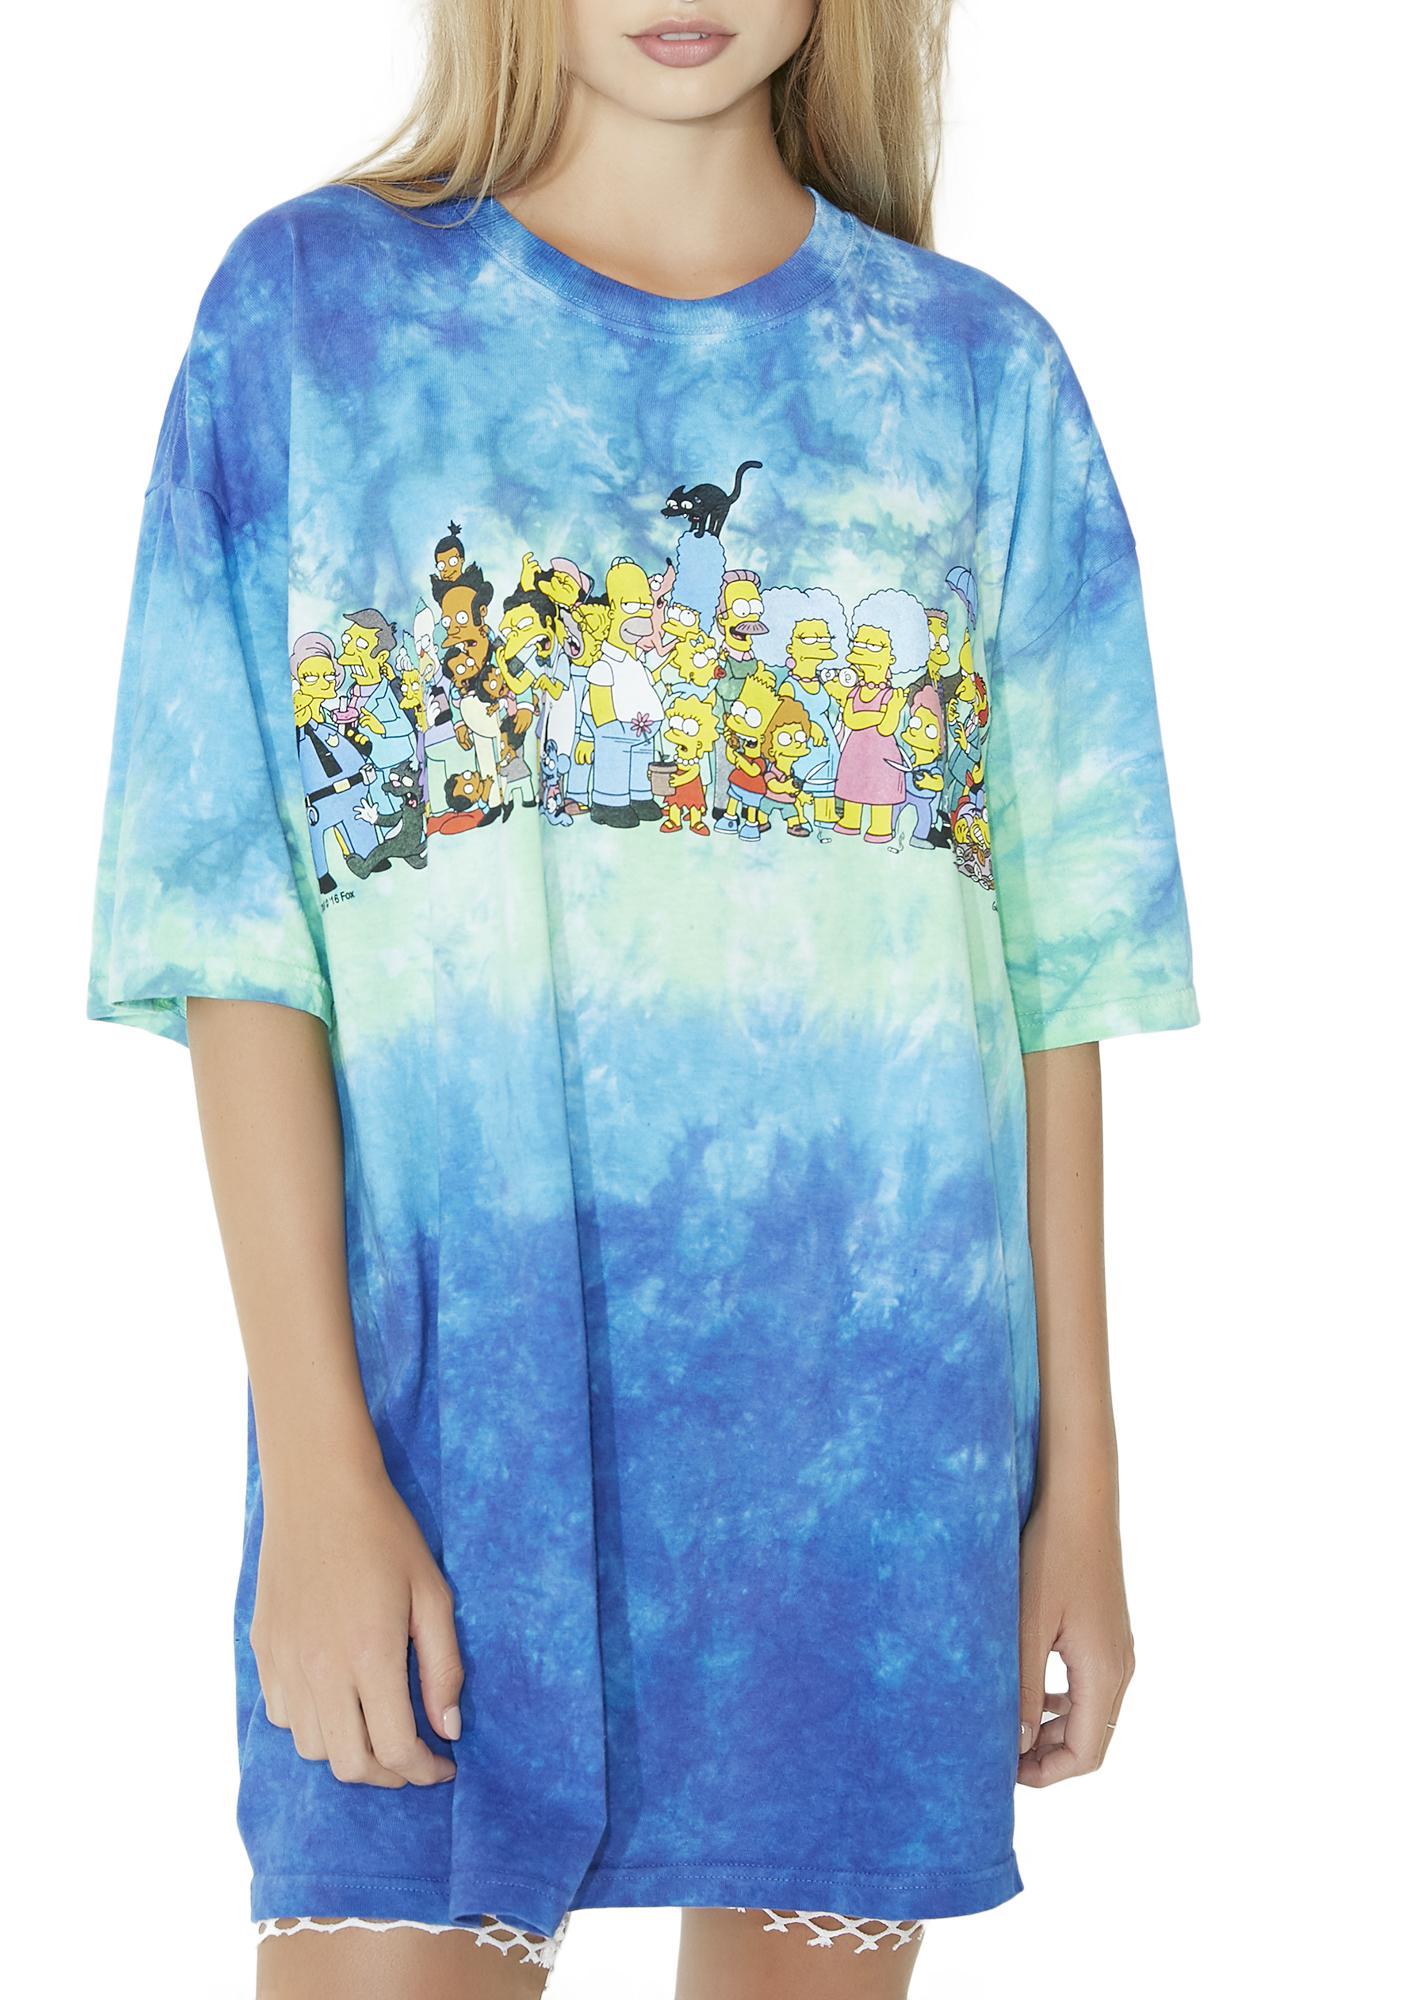 The Gang's All Here Graphic Tee